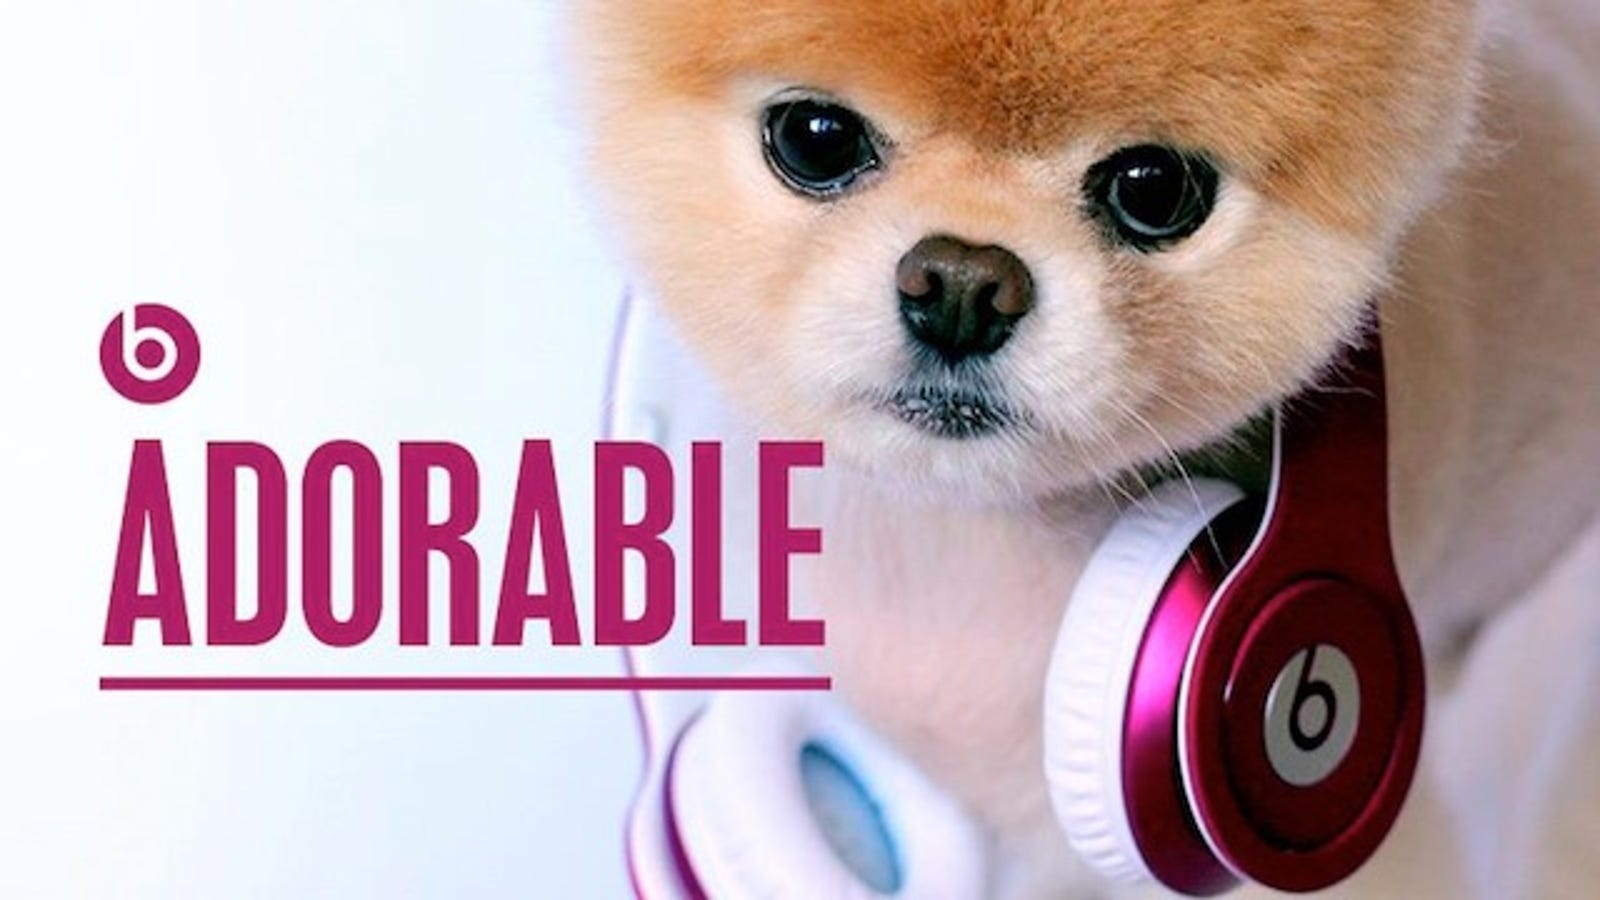 earbuds bulk 100 pack - Internet's Cutest Dog Endorses World's Dumbest Headphones